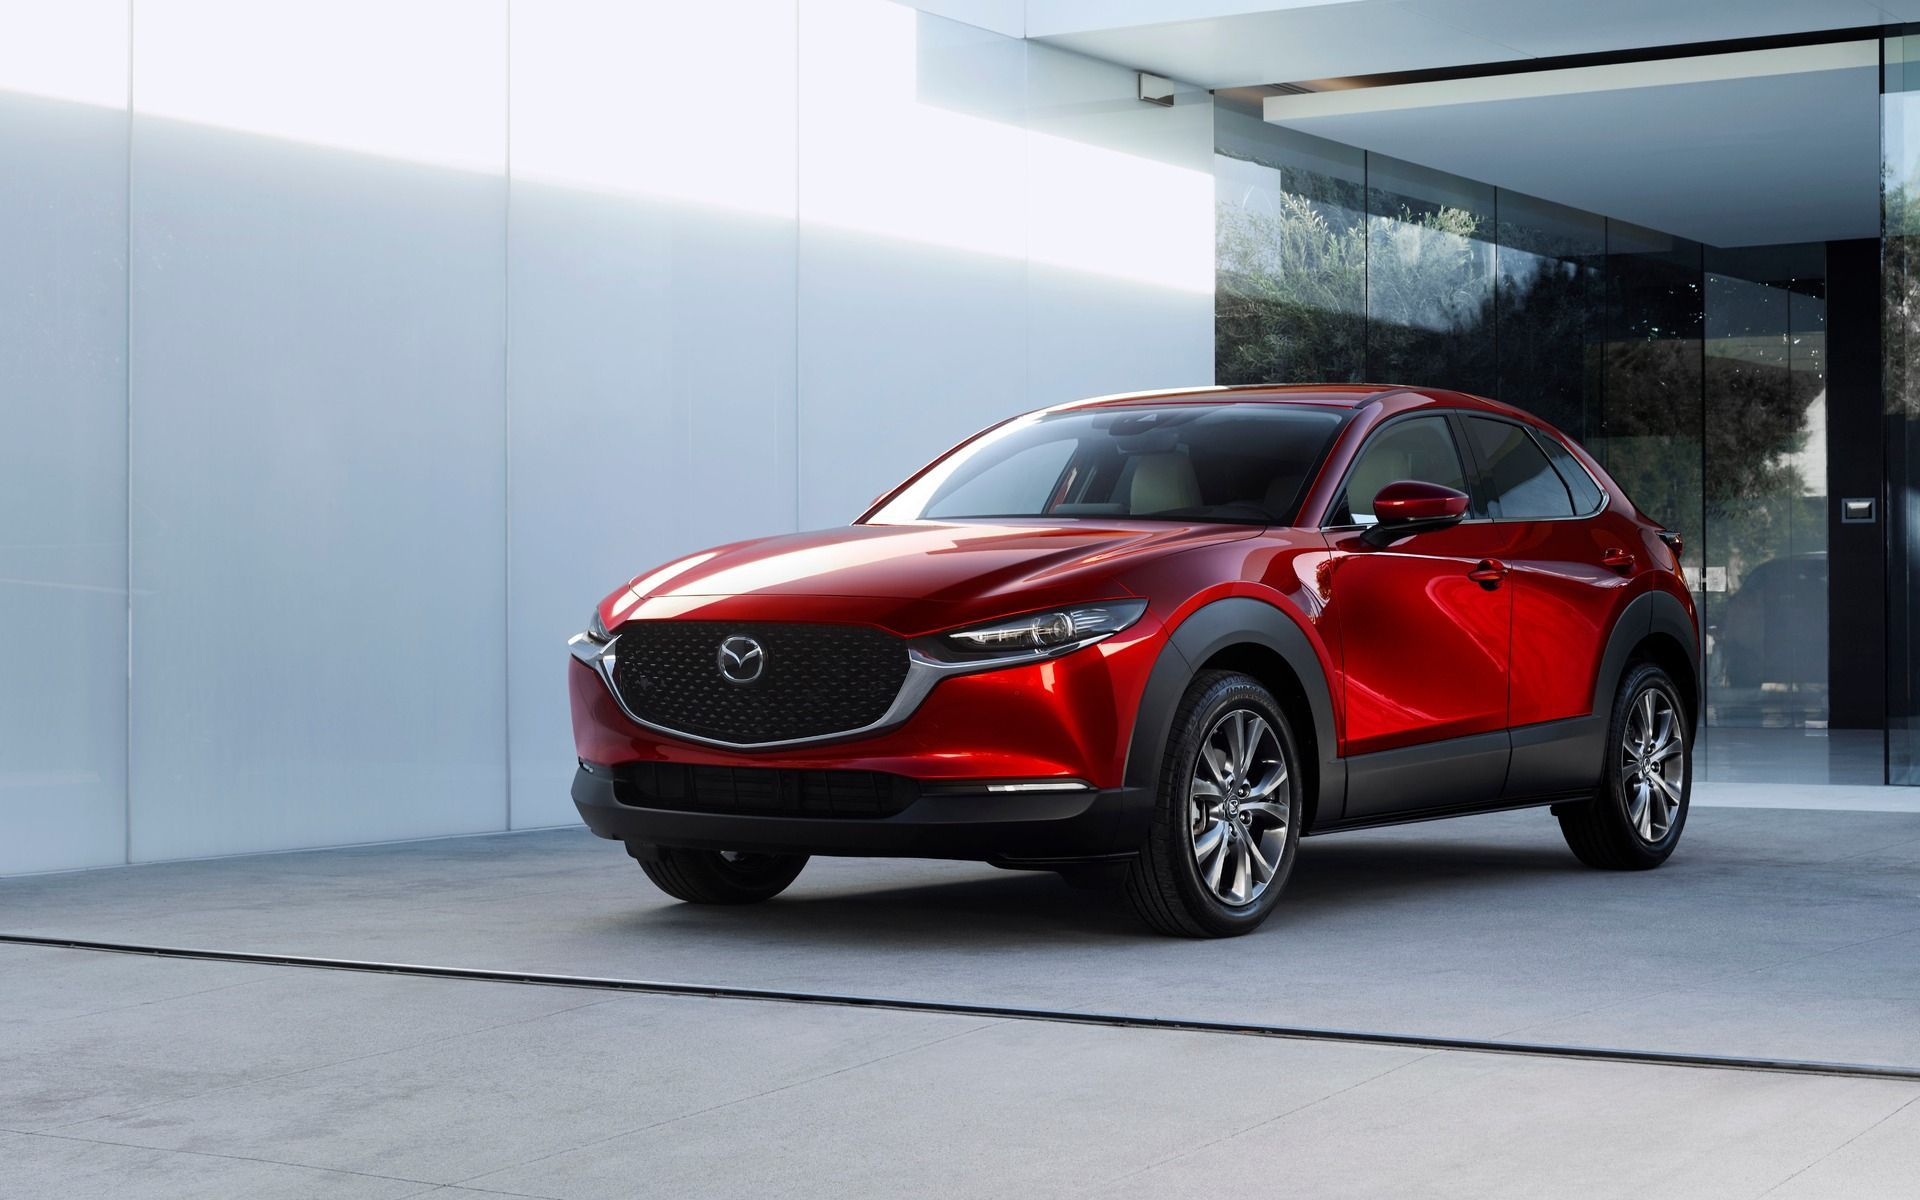 Mazda Cx Three Hybrid 2021 Image In 2020 Mazda Mazda Cars Compact Suv